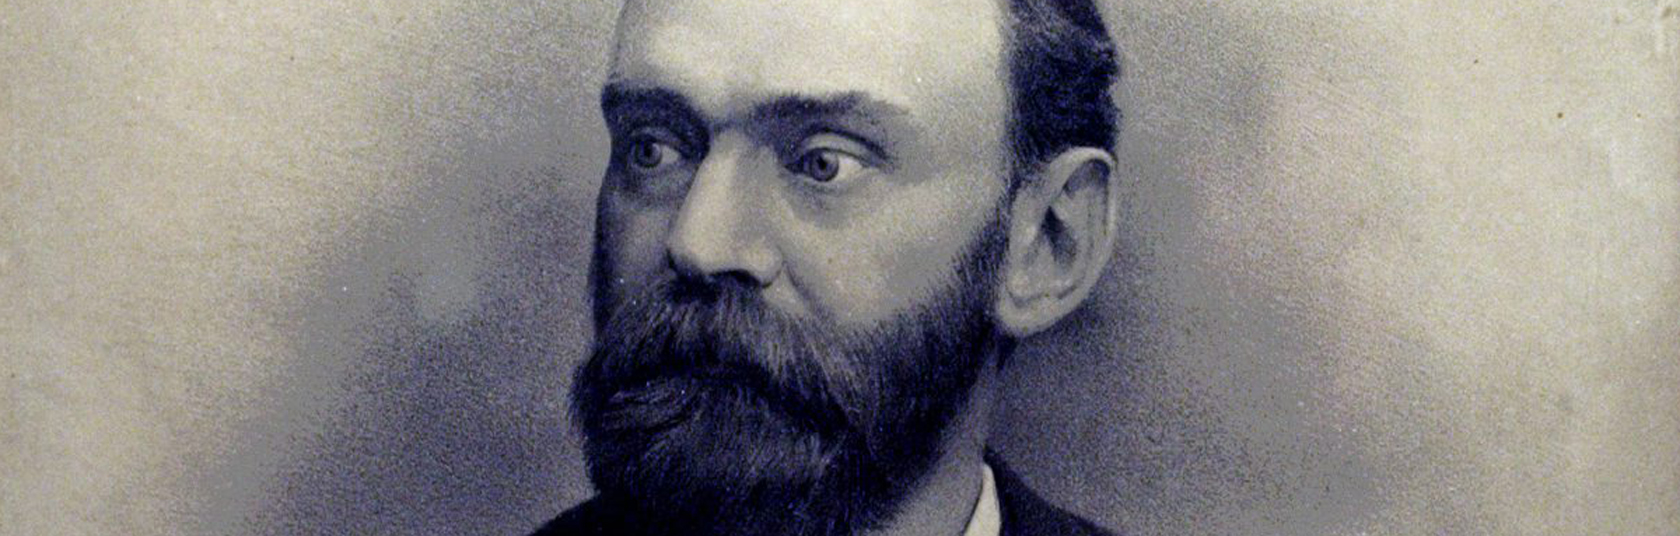 If I have a thousand ideas and only one turns out to be good, I am satisfied - Alfred Nobel